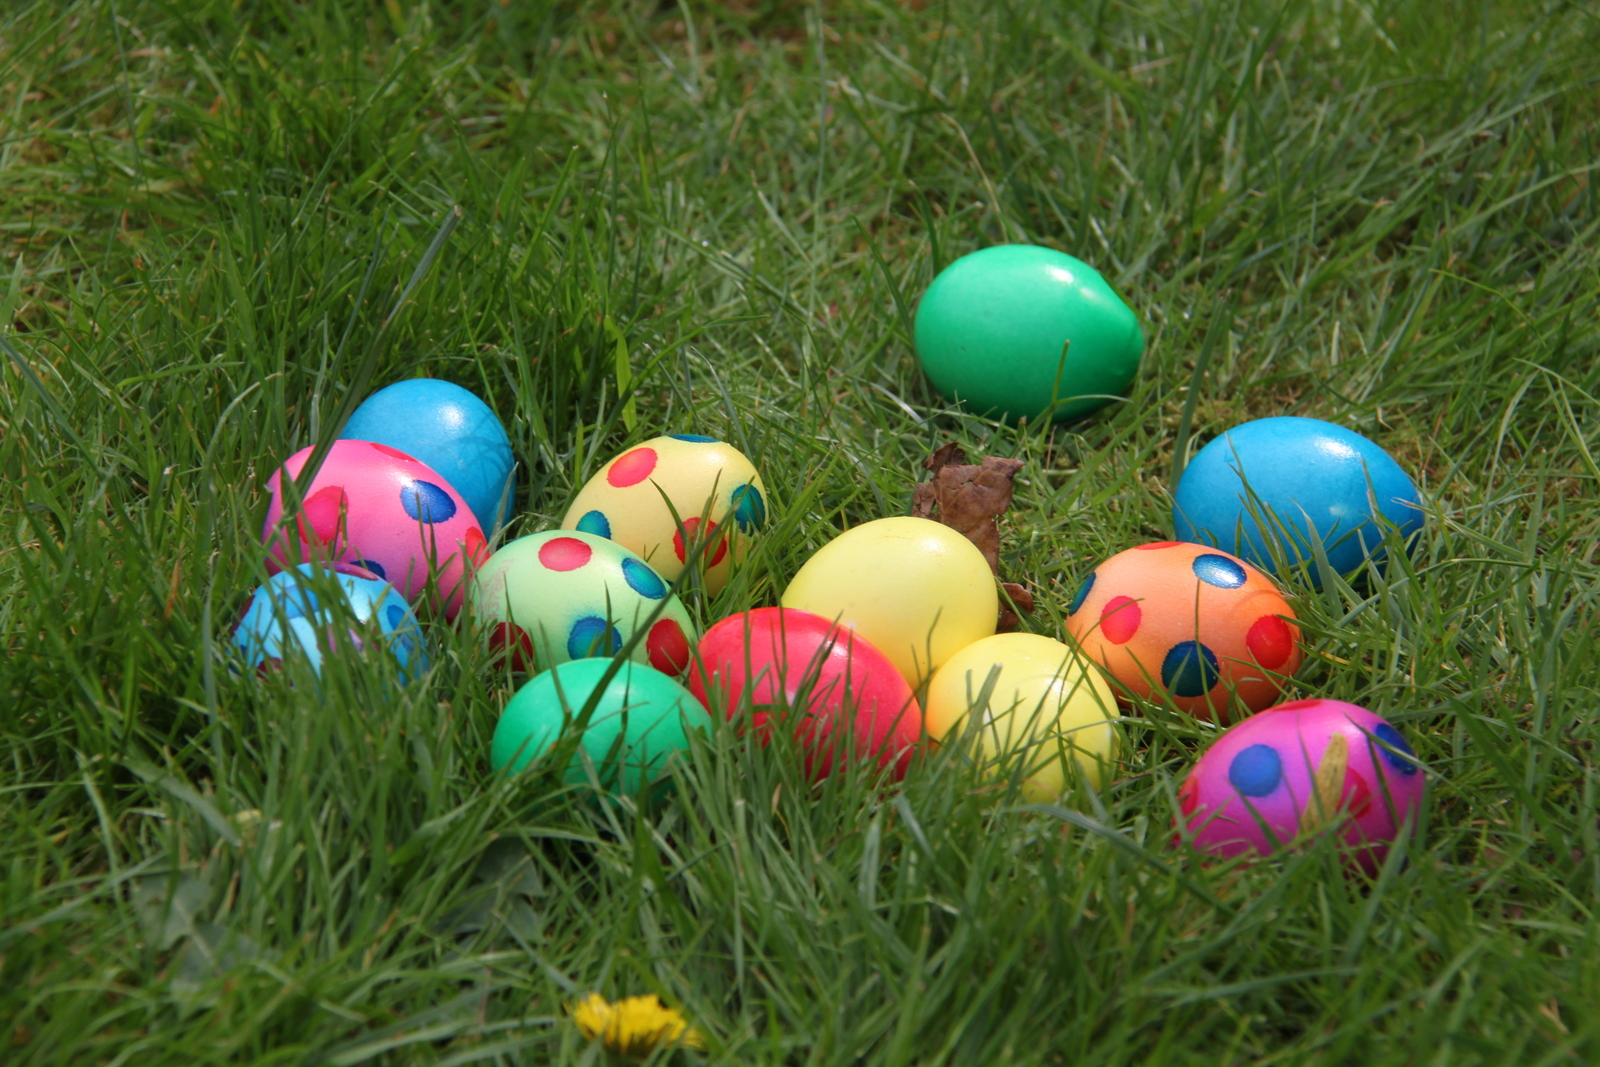 Eggstravaganza 2016 in Butterfield Park at The Meadows